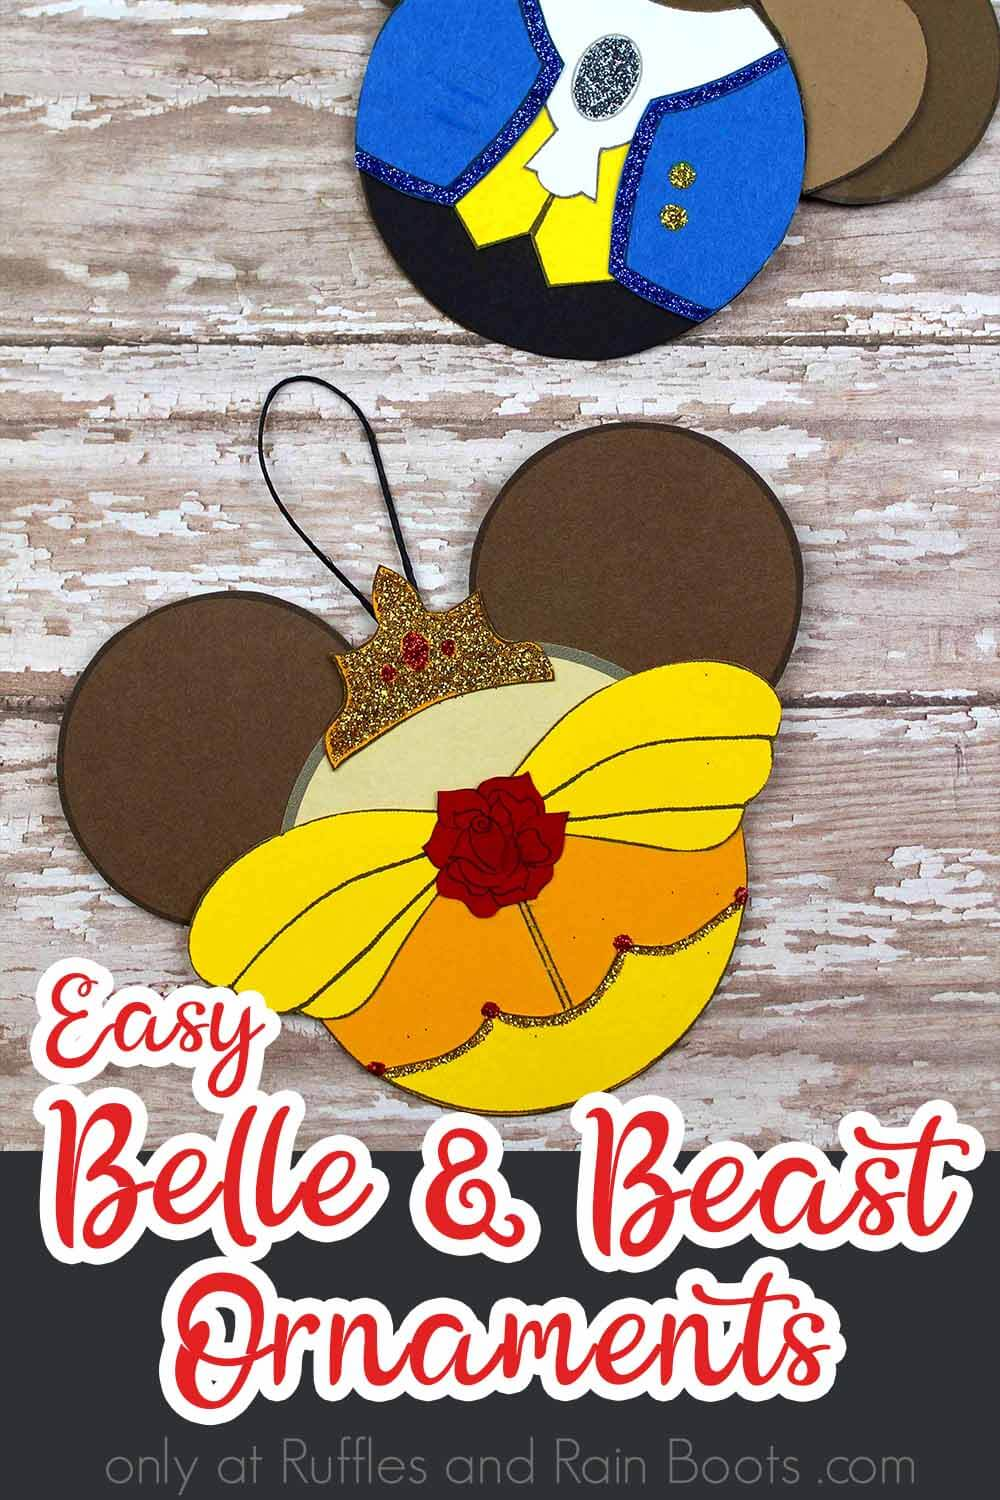 princess belle ornaments on a wood background with text which reads easy belle and beast ornaments